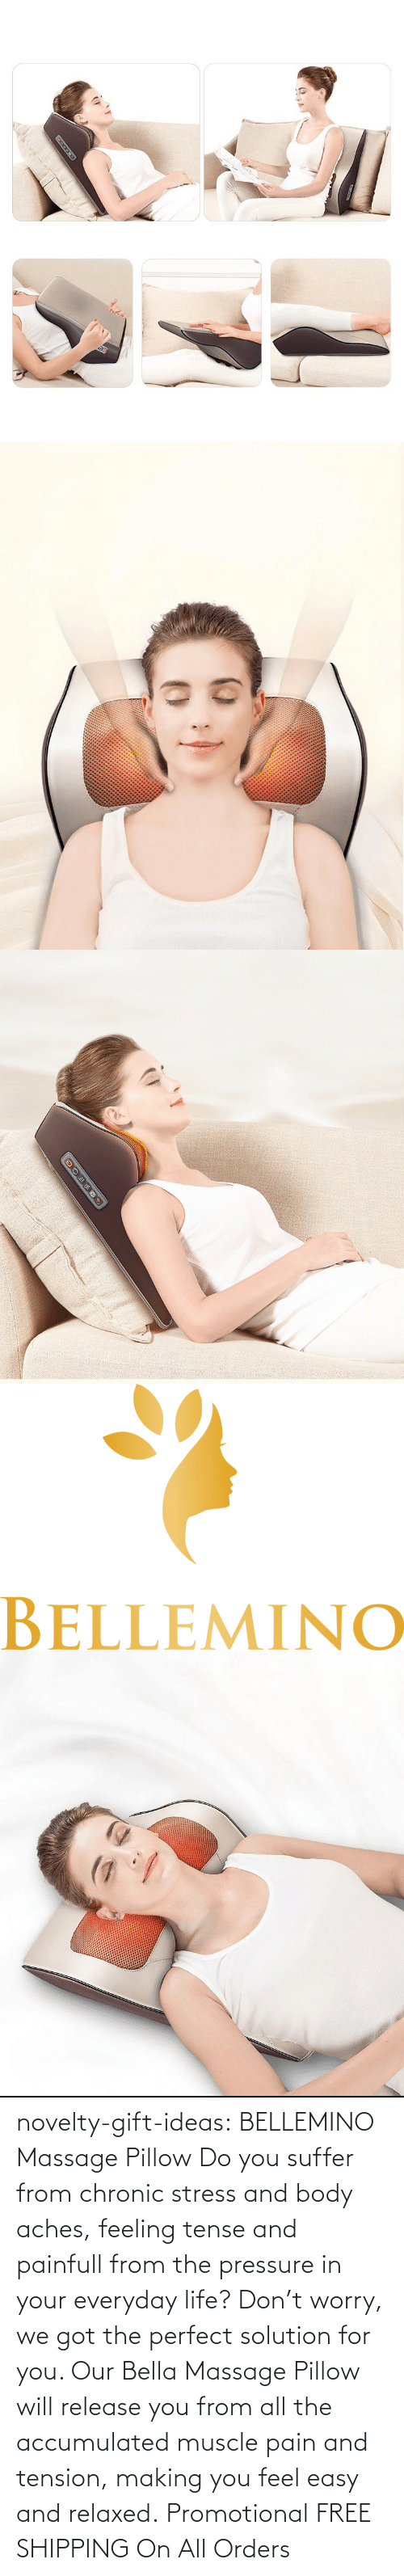 Life: novelty-gift-ideas:   BELLEMINO Massage Pillow     Do you suffer from chronic stress and body aches, feeling tense and painfull from the pressure in your everyday life? Don't worry, we got the perfect solution for you. Our Bella Massage Pillow will release you from all the accumulated muscle pain and tension, making you feel easy and relaxed.     Promotional FREE SHIPPING On All Orders